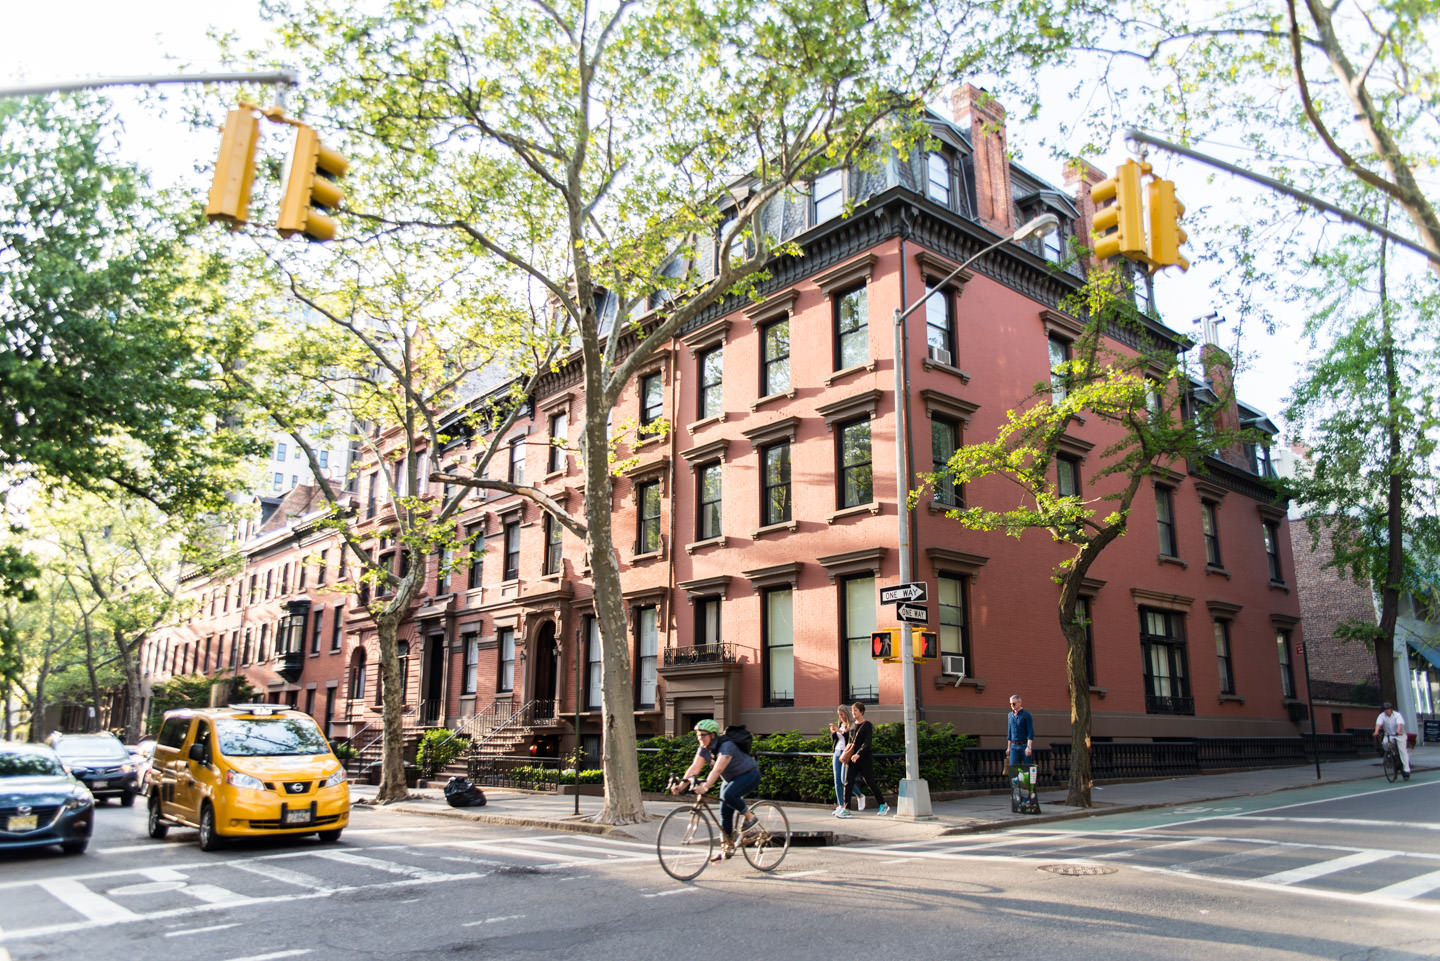 Blog-Mode-And-The-City-Looks-Brooklyn-Heights (1 sur 1)